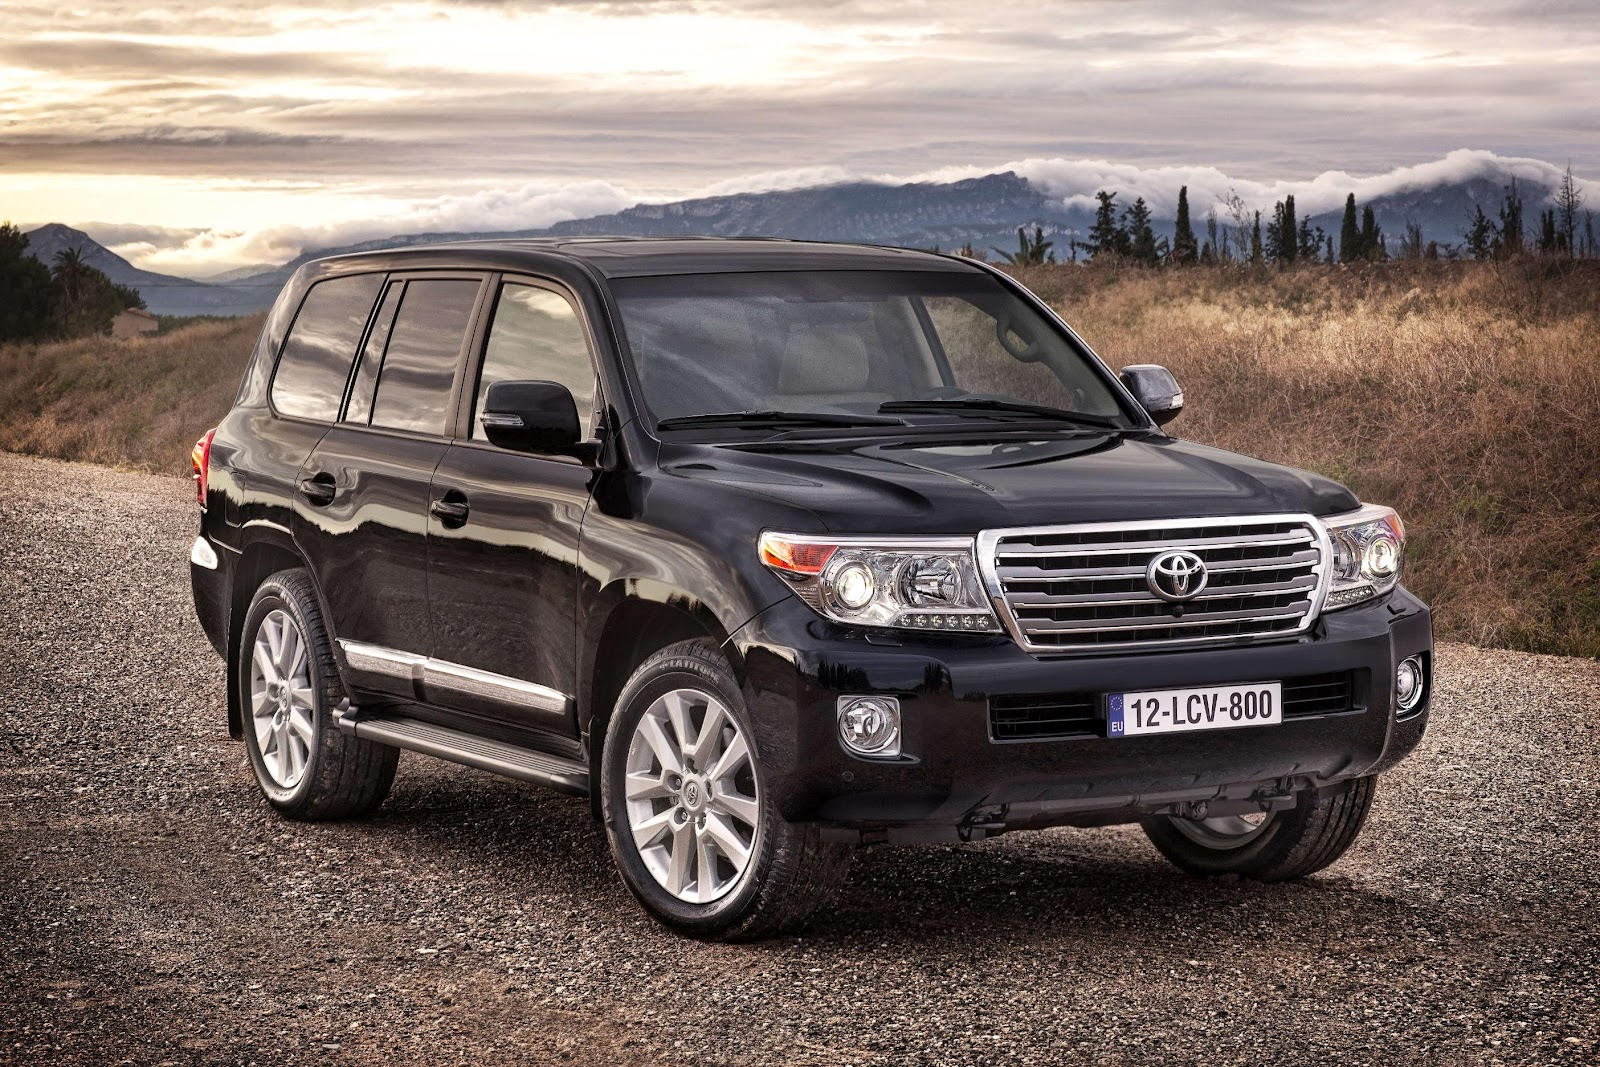 Toyota Land Cruiser 300 photo 11